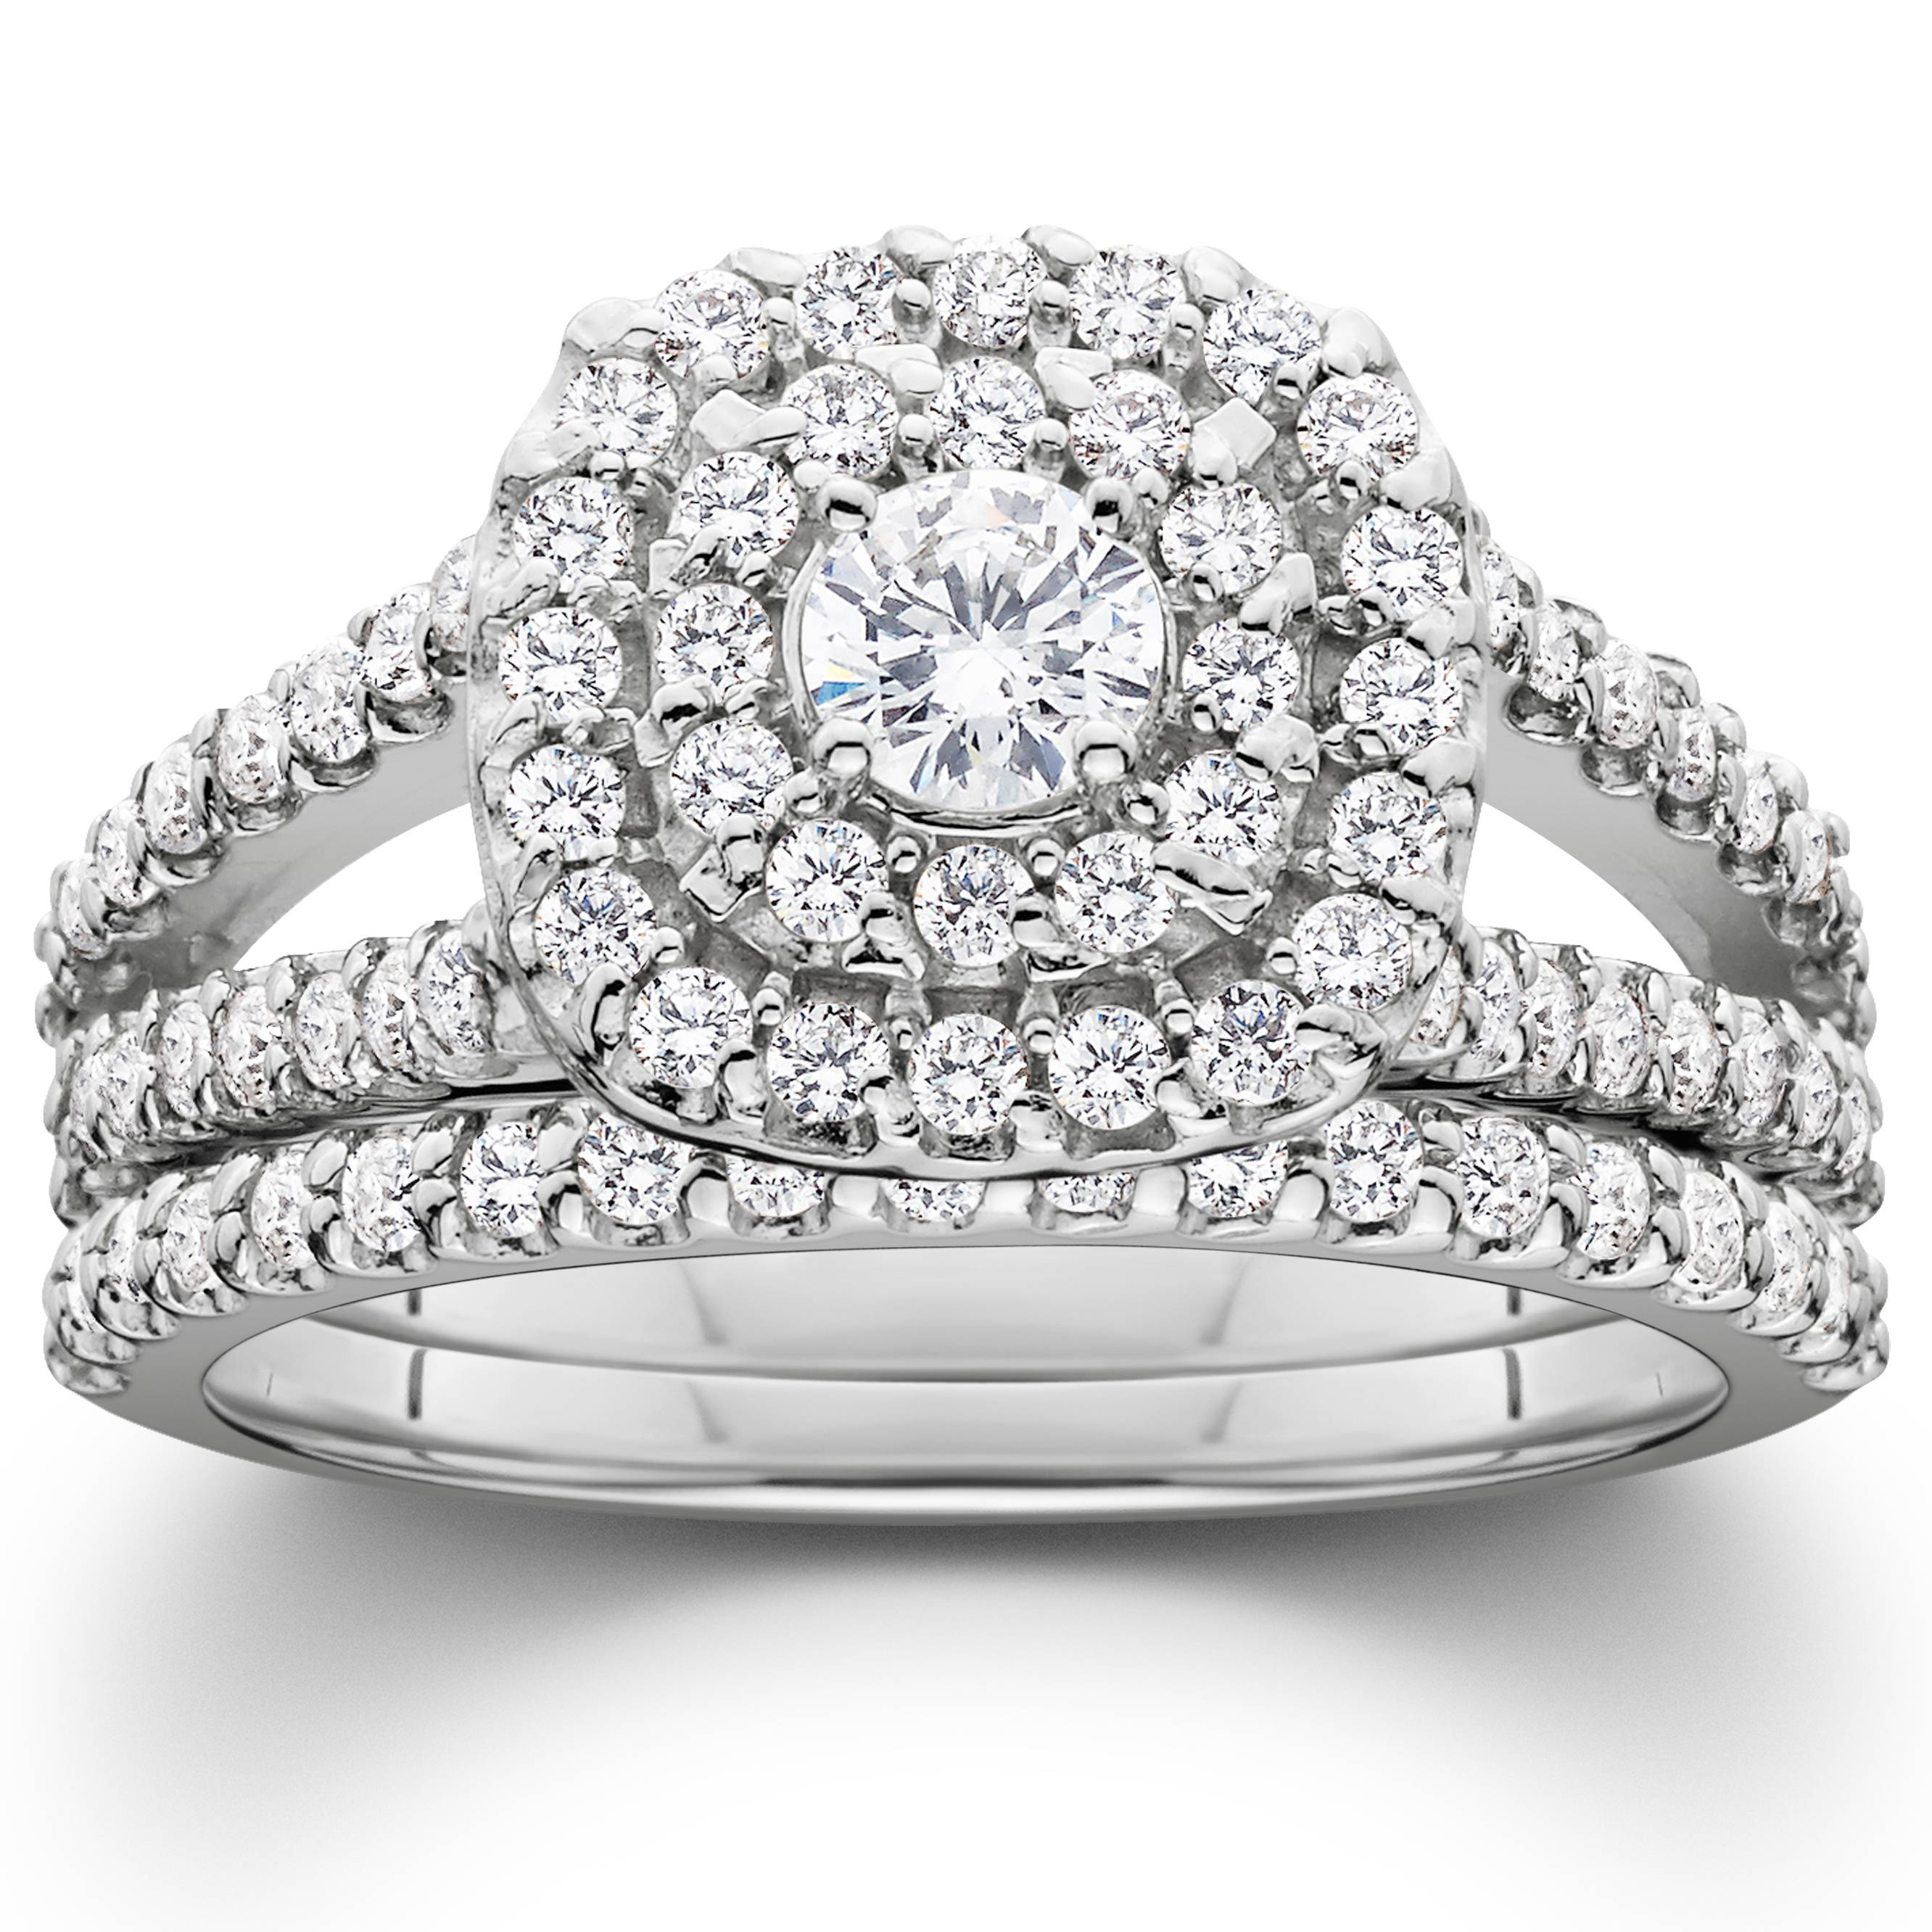 The best wedding rings Info order everything you need to know